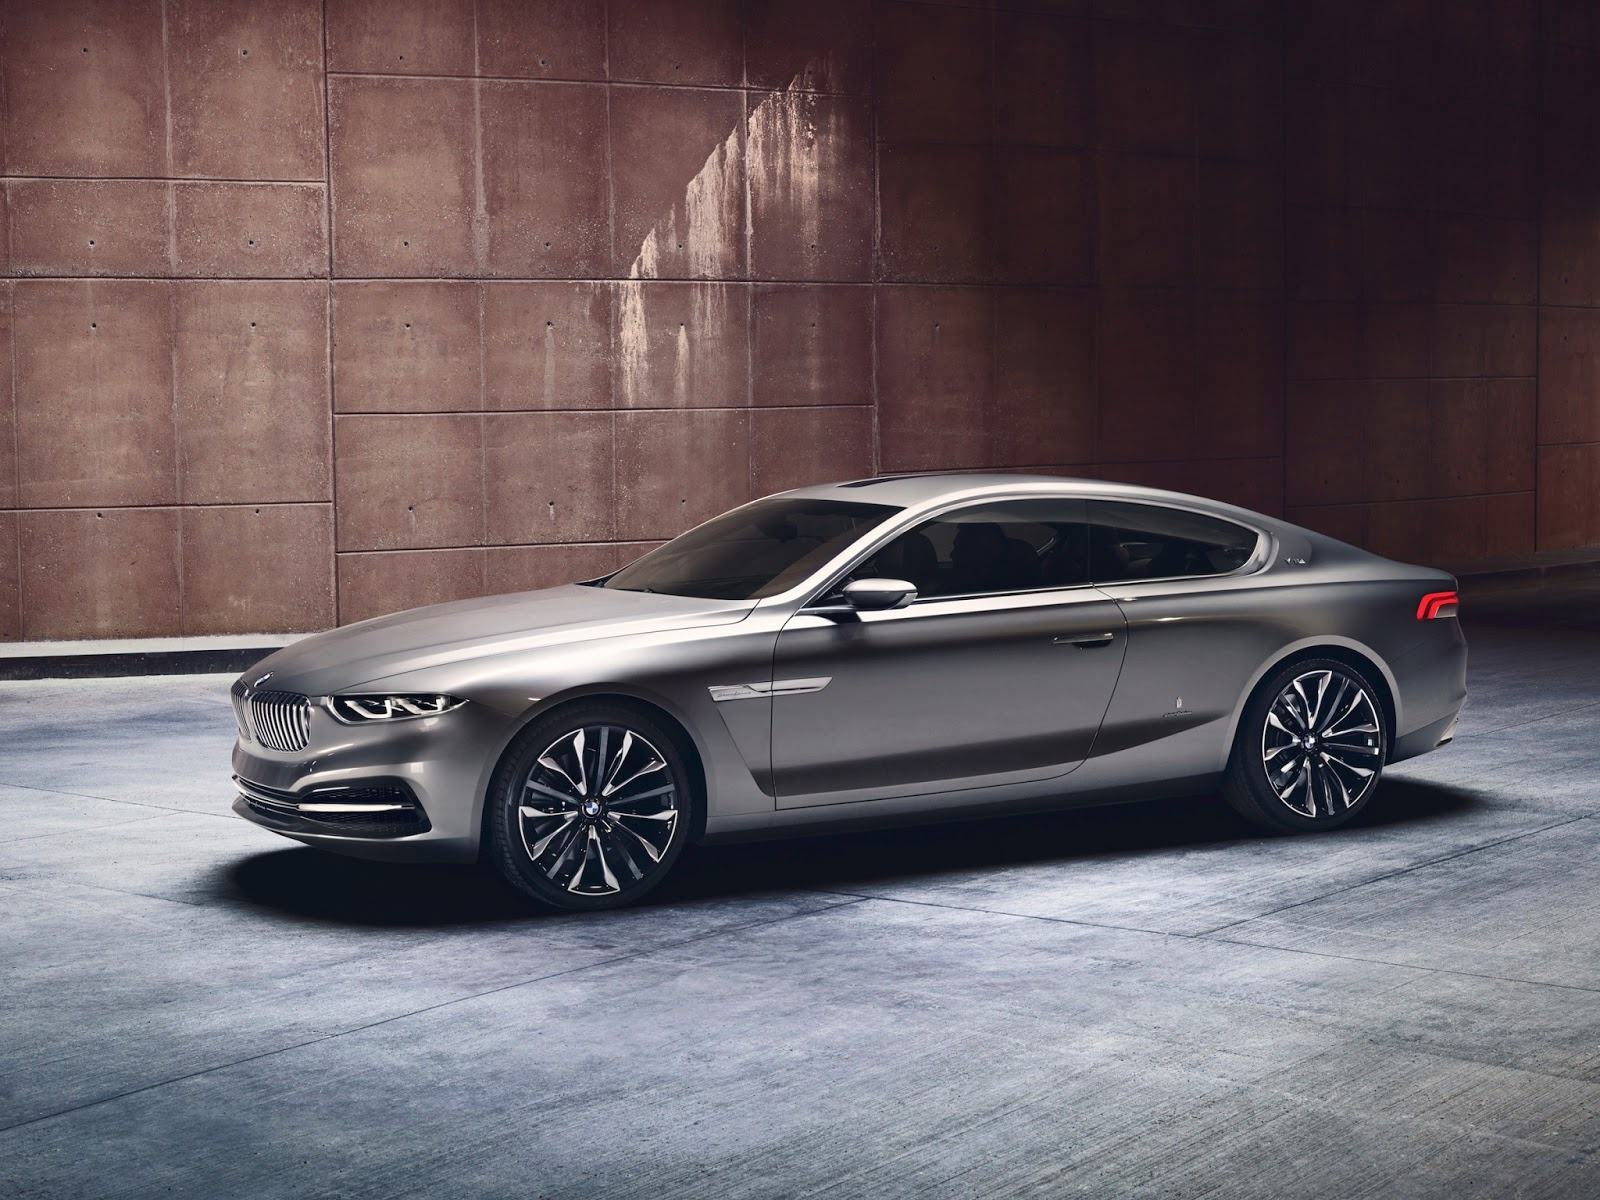 With The Bmw Pininfarina Gran Lusso Coupé Design Team Took Up Exclusive Aspects Such As Luxury And Elegance Fed Them Into A Creative